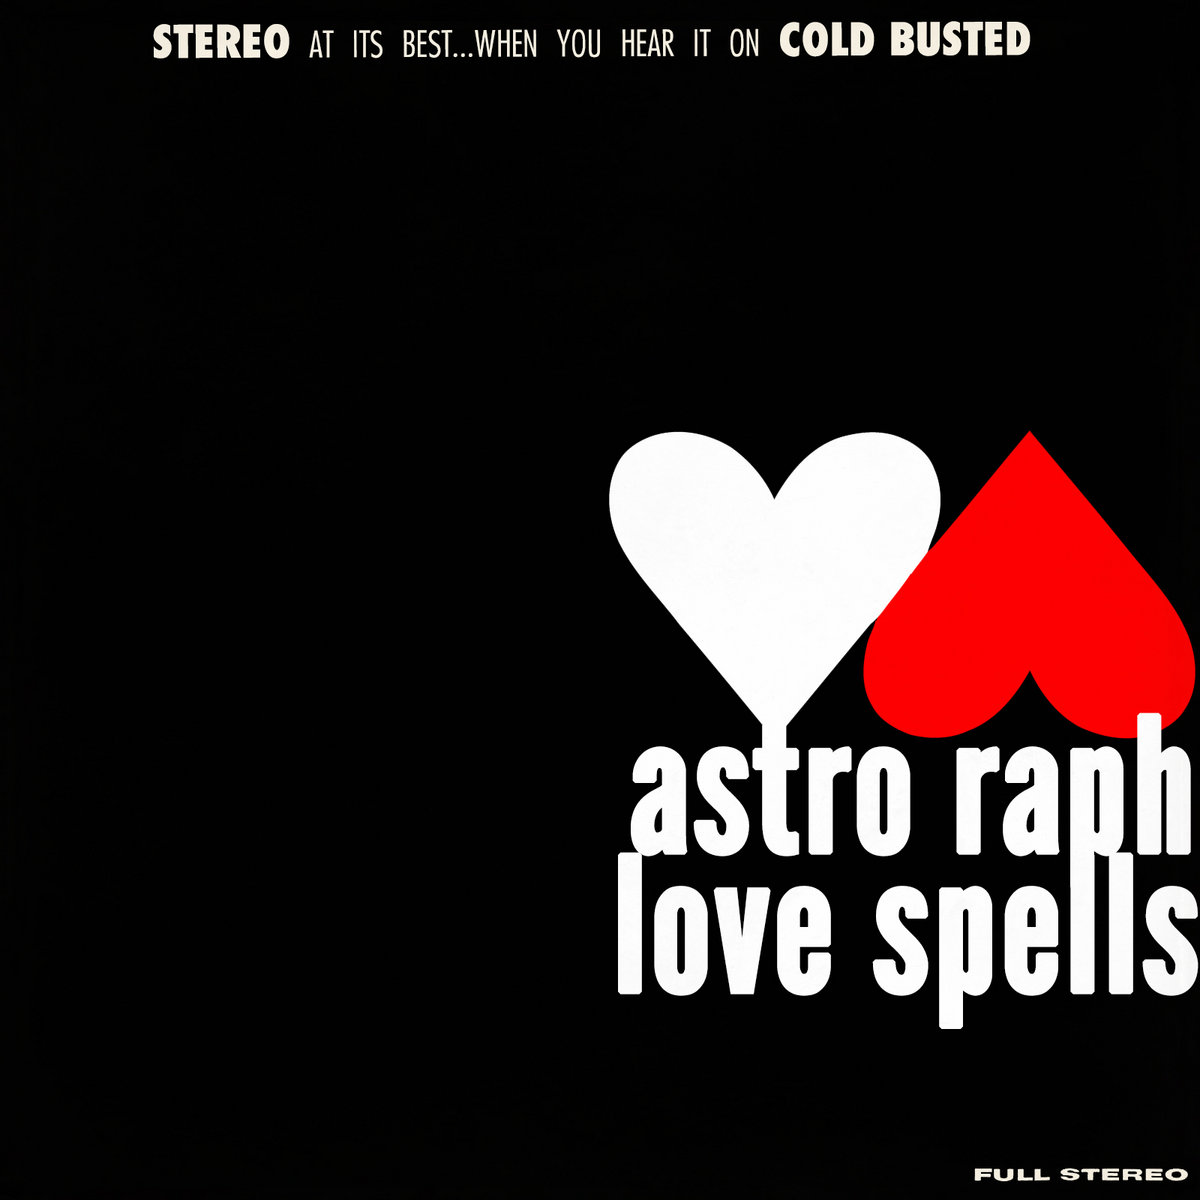 Love Spells | Cold Busted